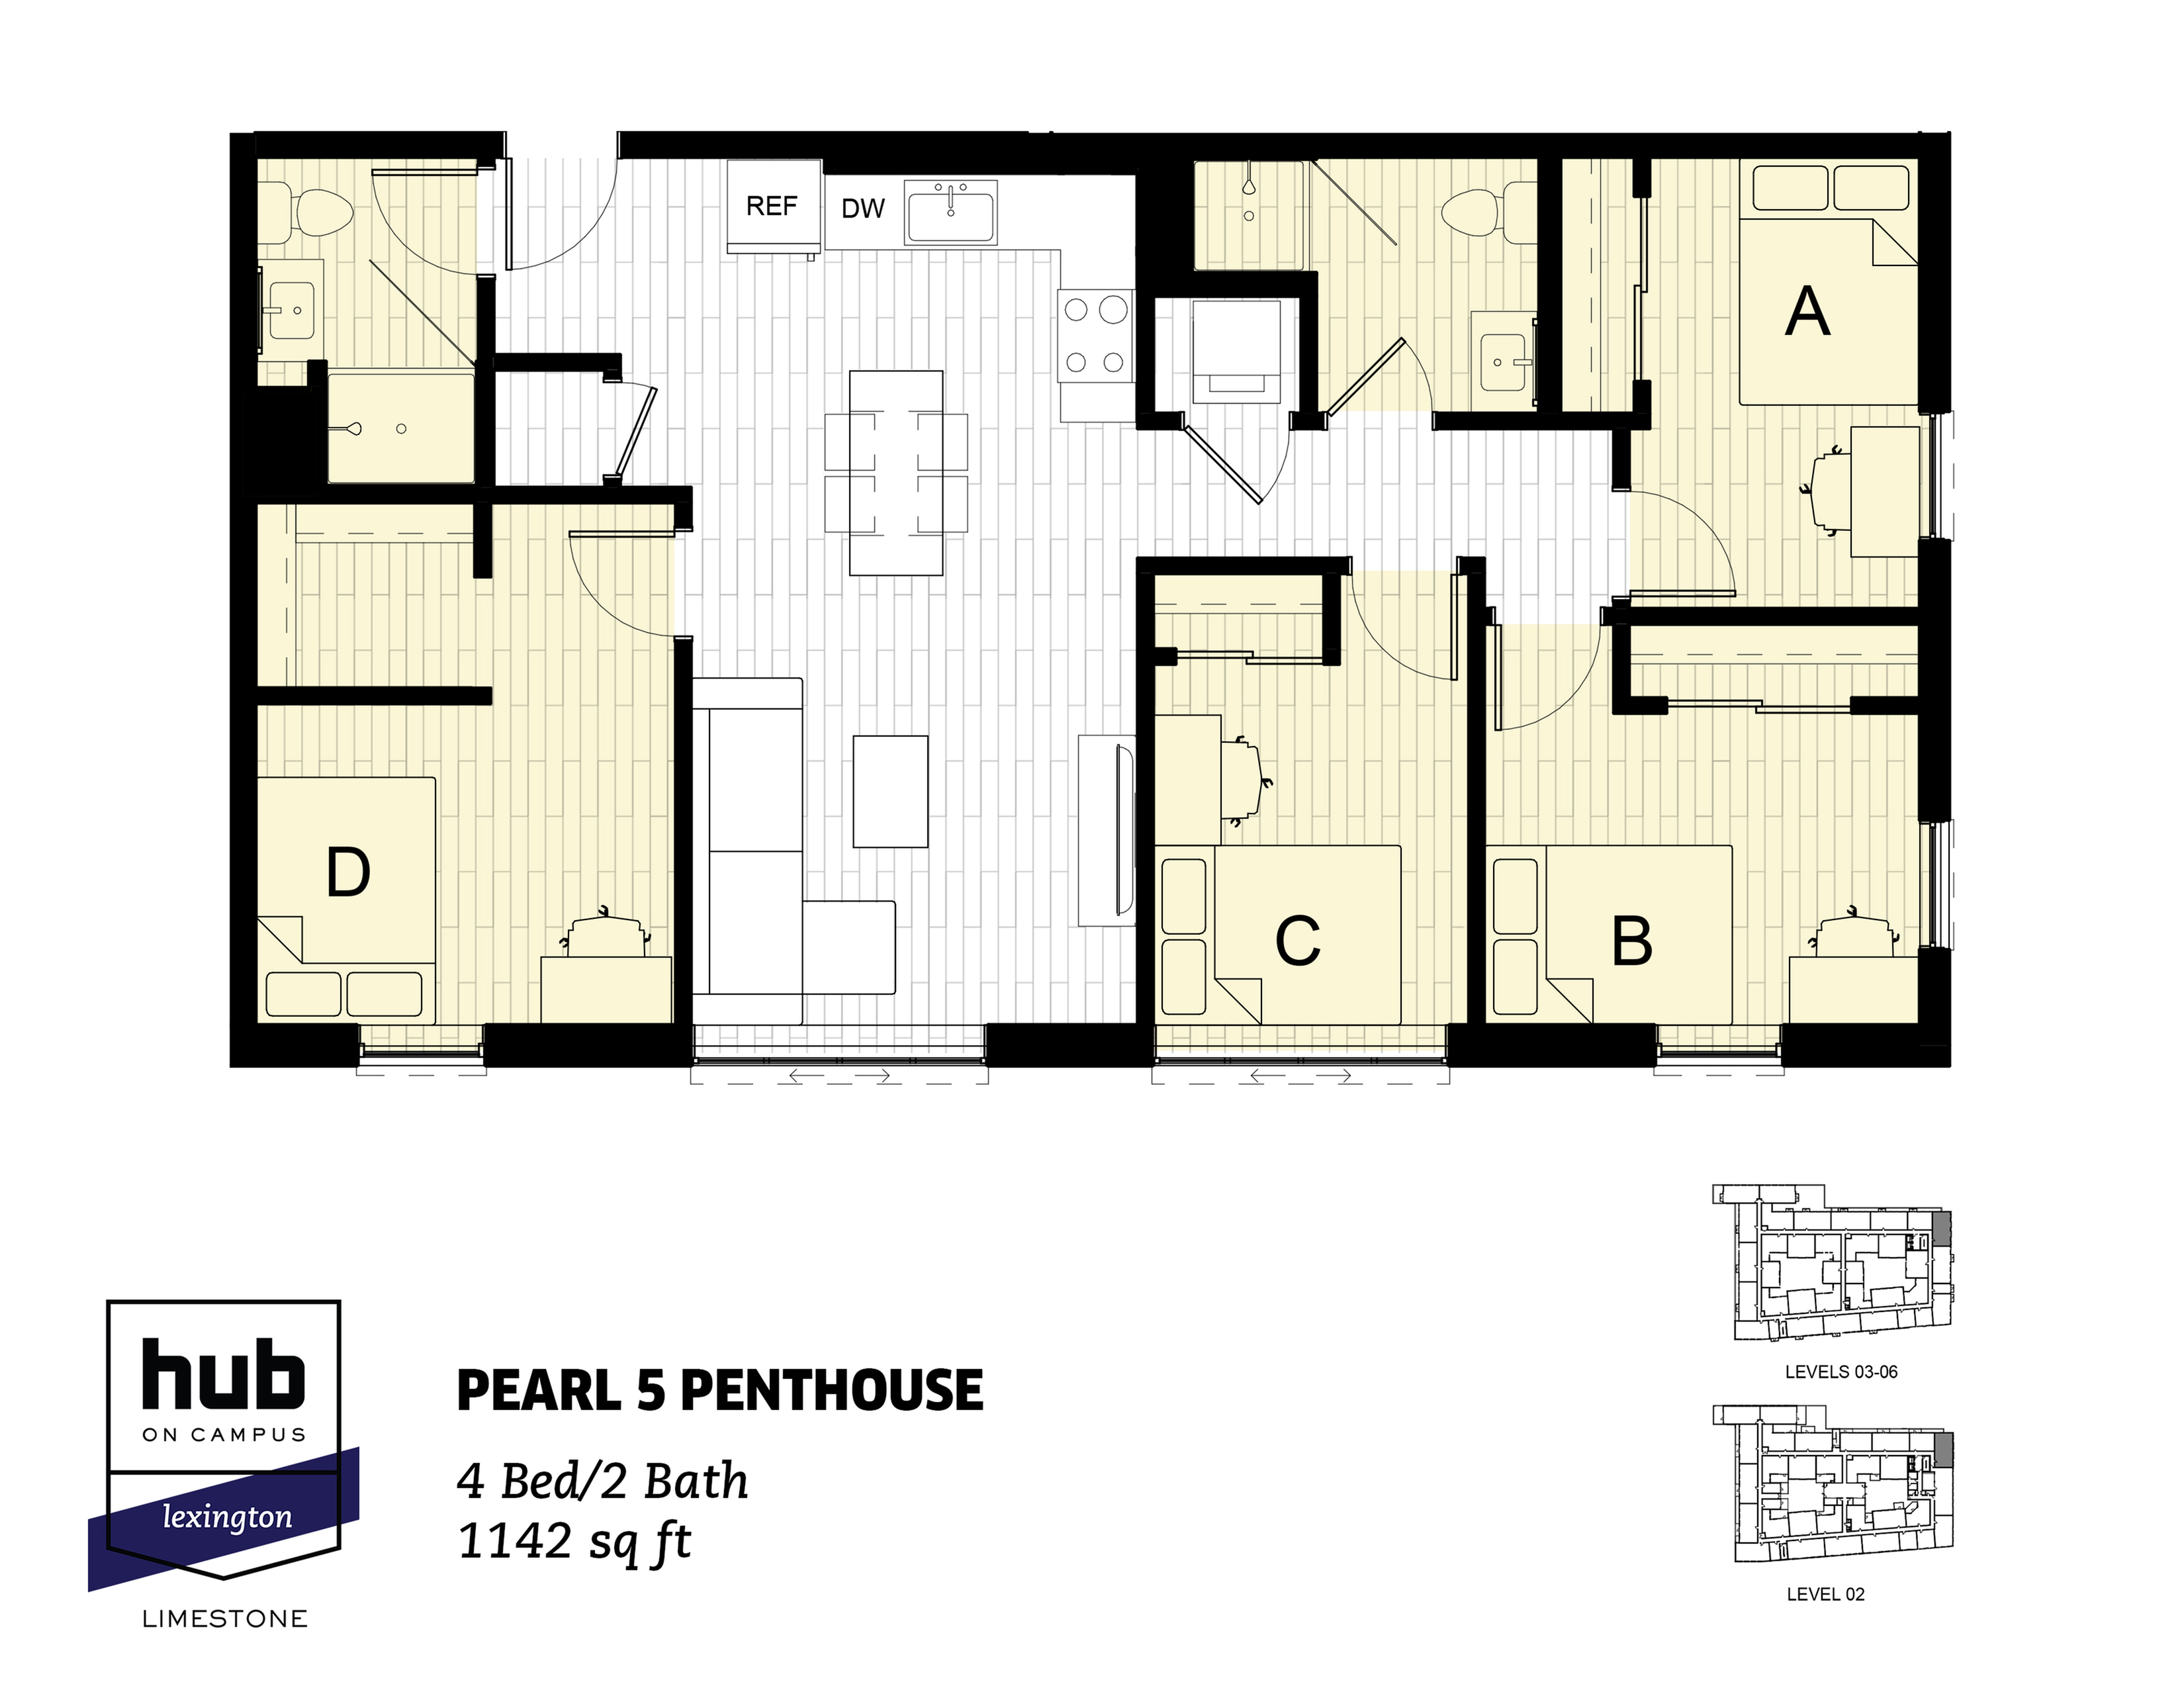 Pearl 5 Penthouse